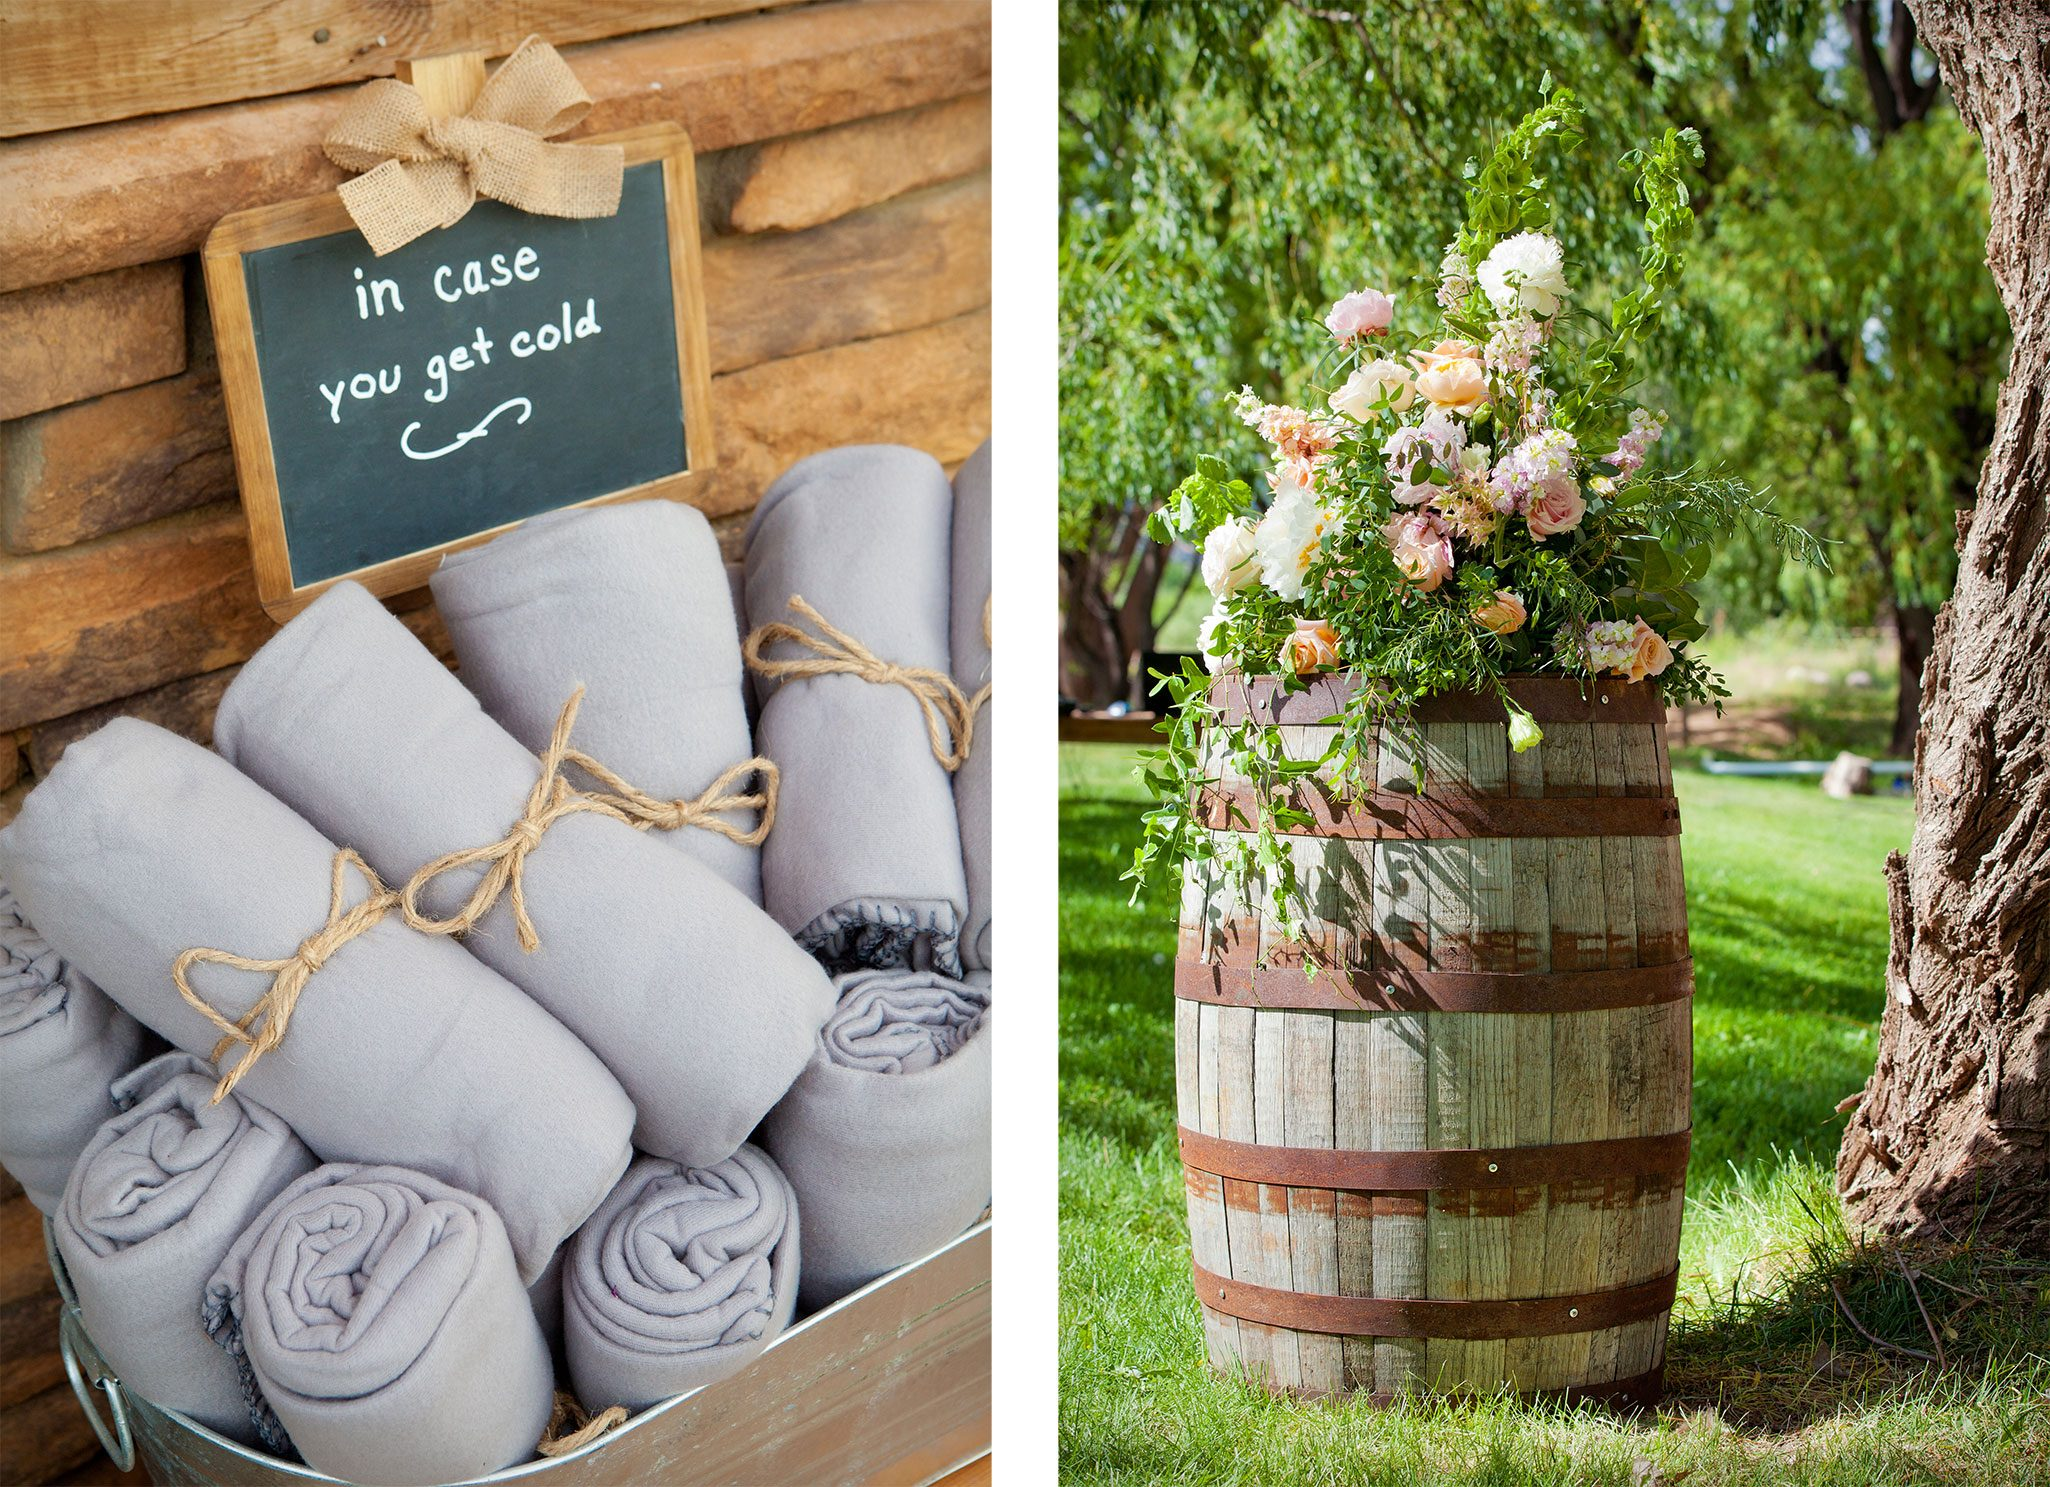 wedding bouquet on wine barrel. Fleece blankets for ceremony